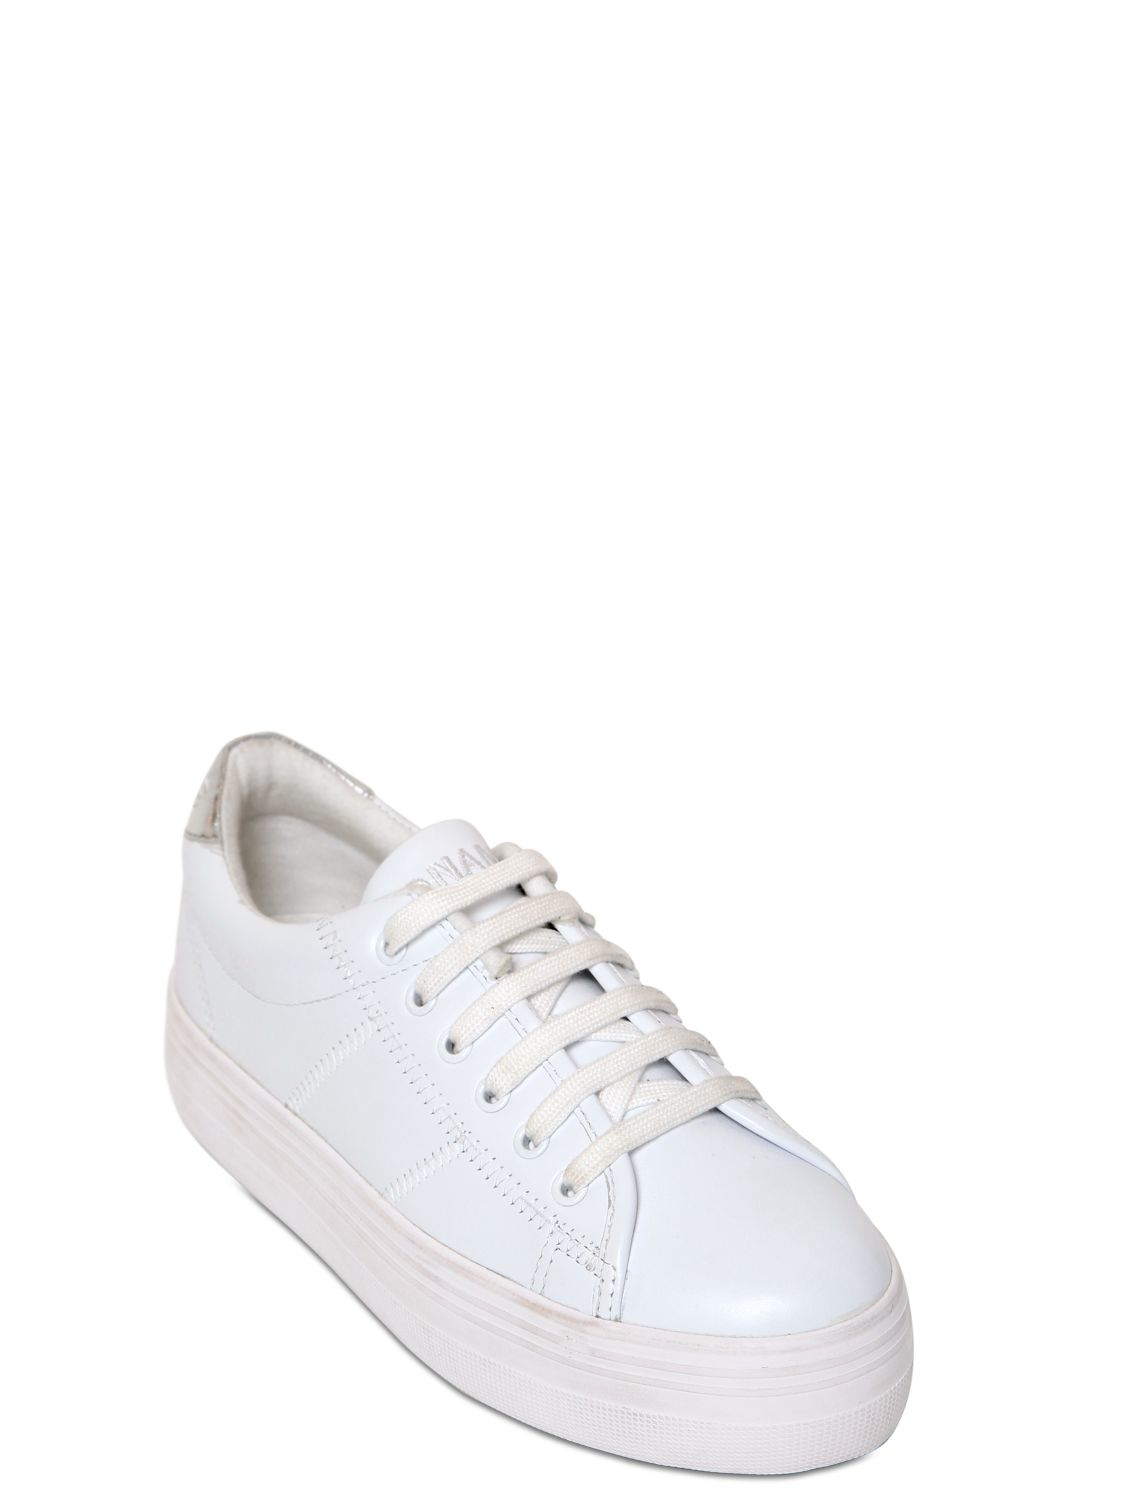 Lyst No Name 40mm Plato Leather Platform Sneakers In White